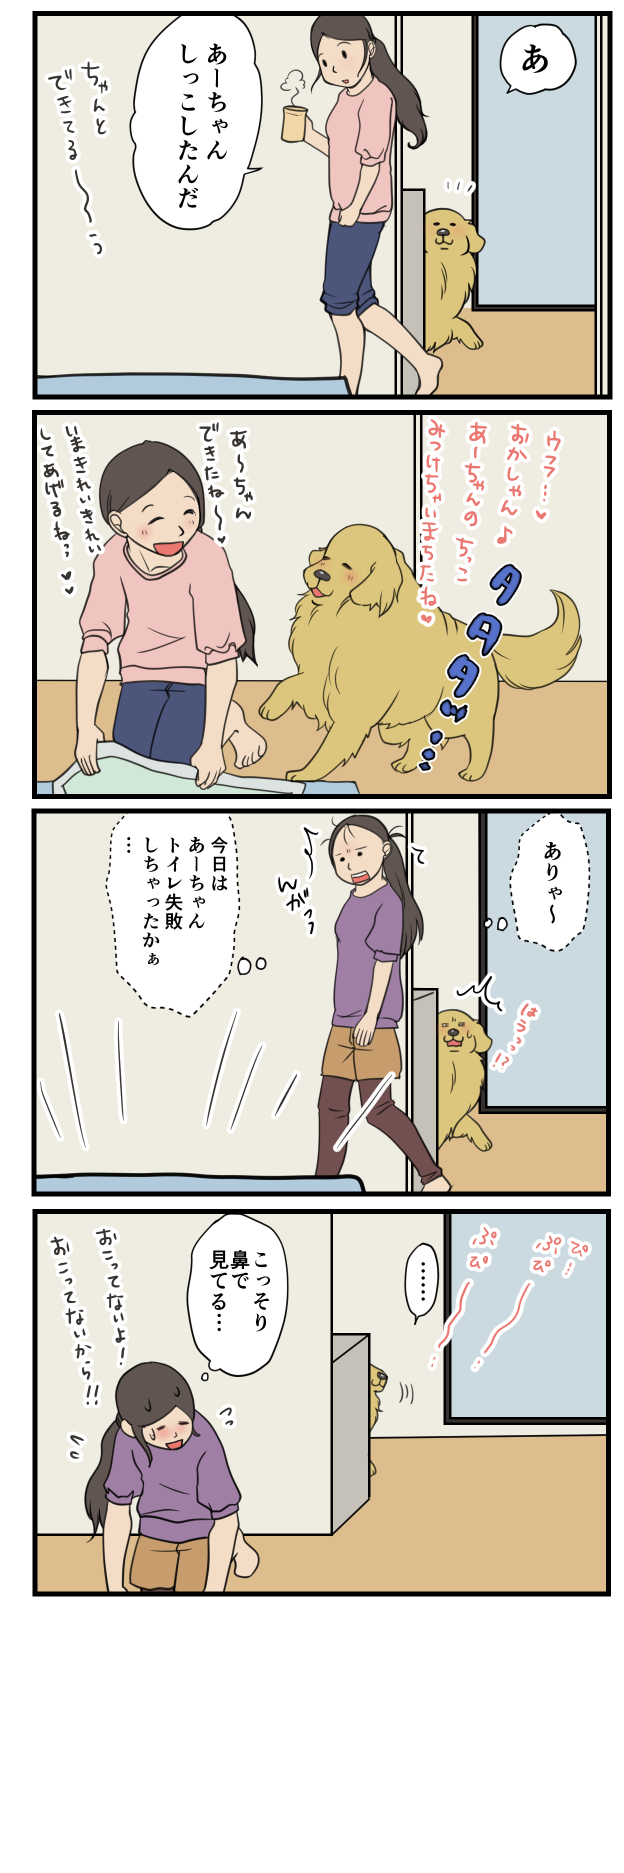 20180509230145a16.png